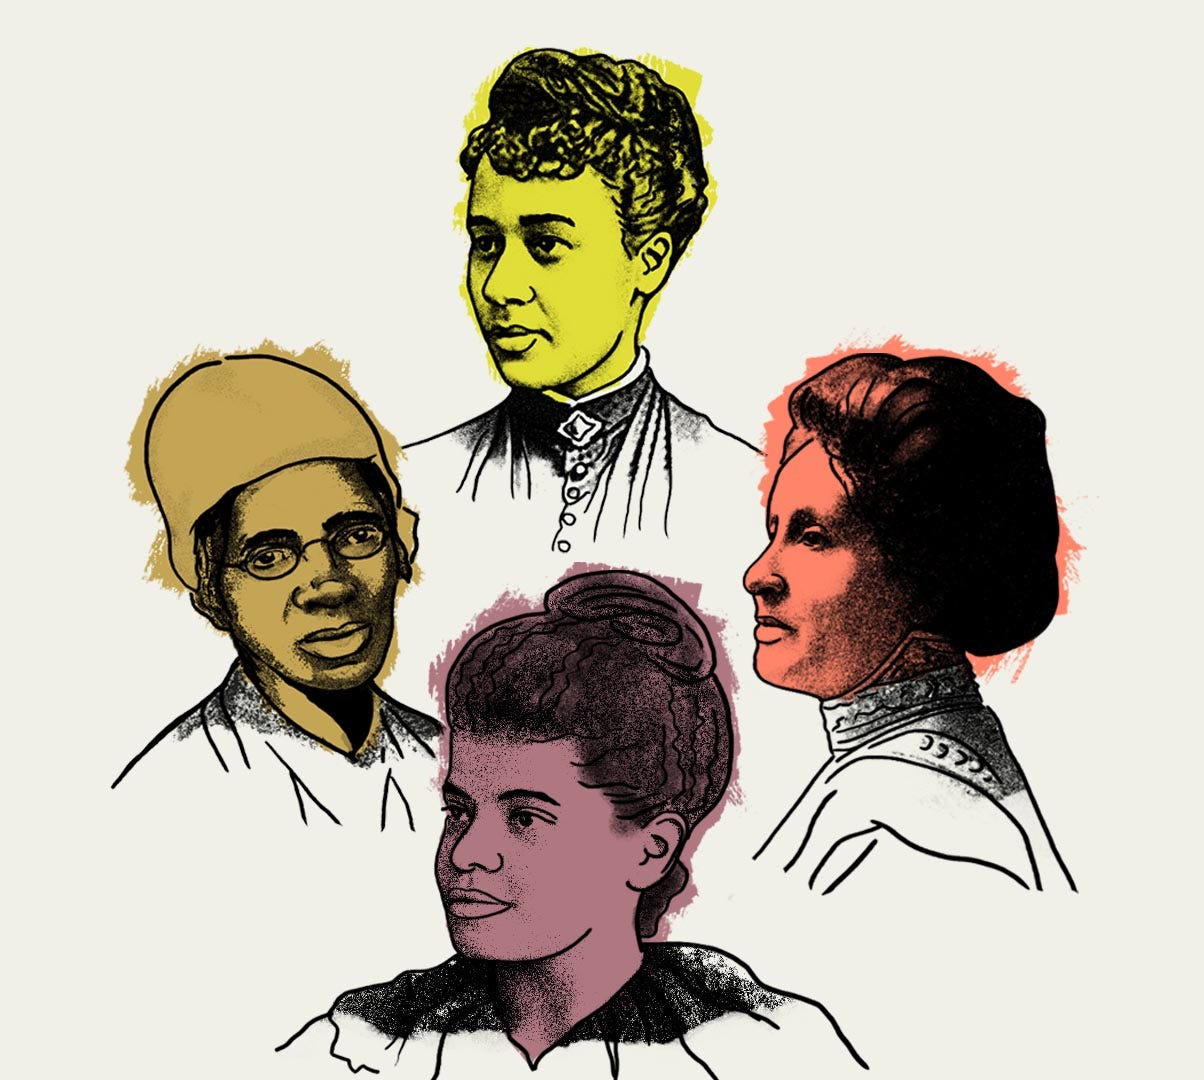 Sojourner Truth, Anna Julia Cooper, Mary Church Terrell and Ida B. Wells